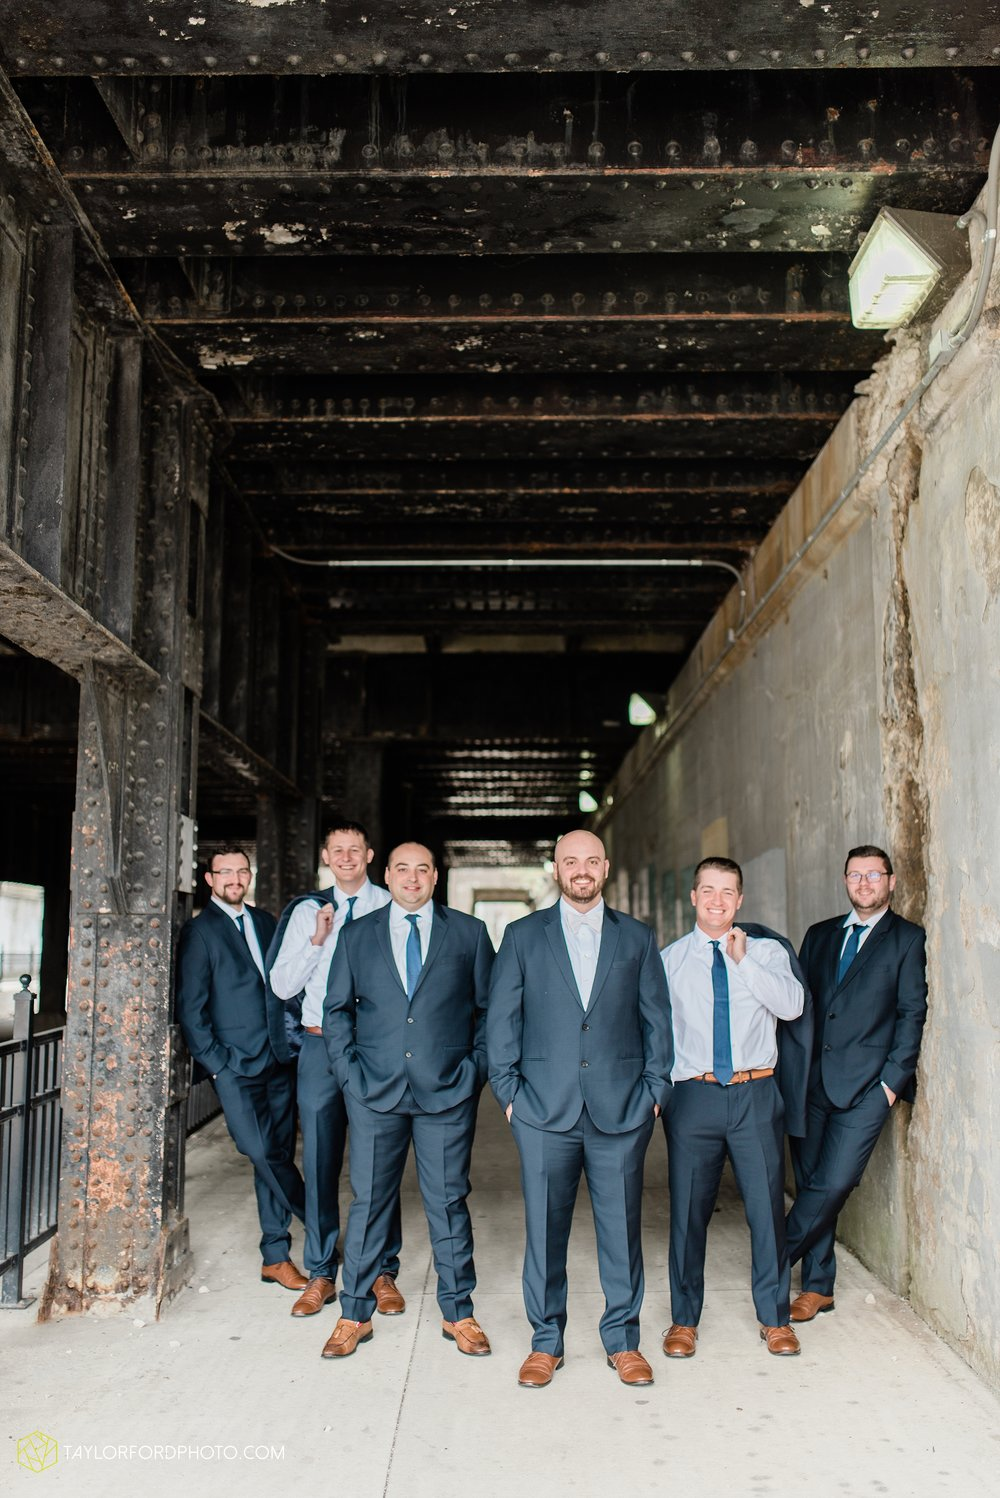 the-philmore-on-broadway-downtown-fort-wayne-indiana-wedding-photographer-Taylor-Ford-Photography_6887.jpg